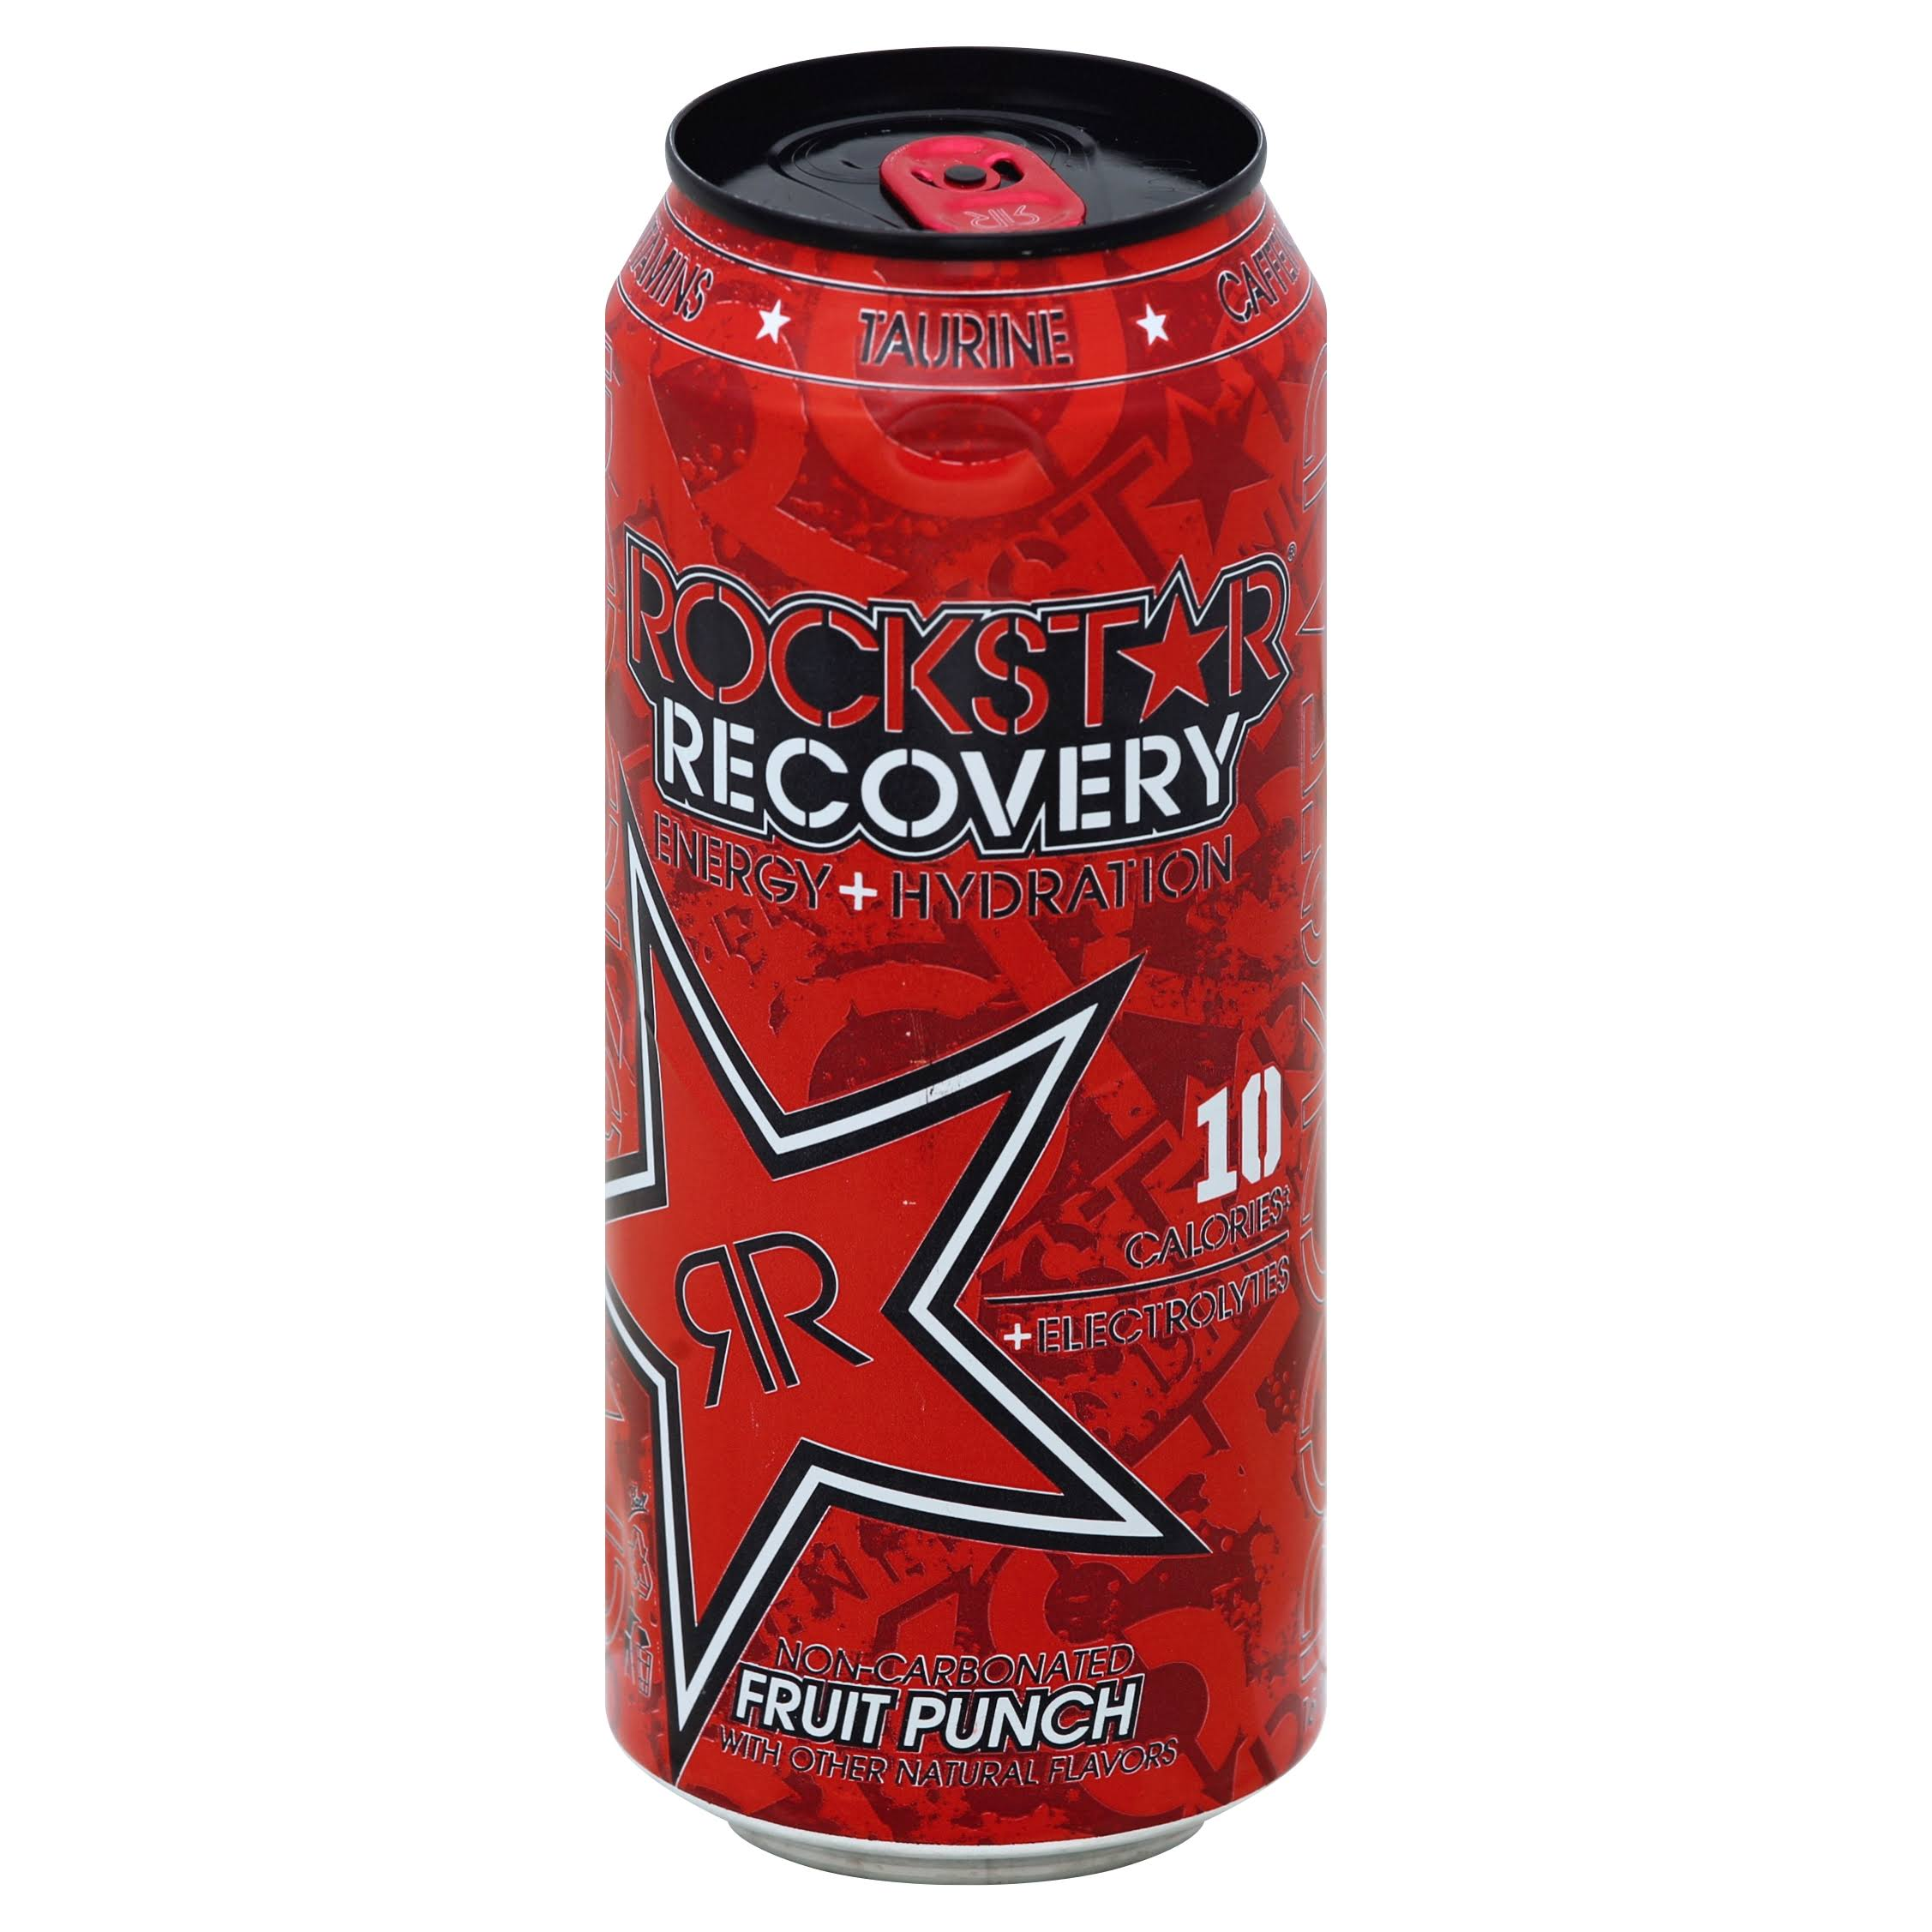 Rockstar Recovery Energy Drink, Non-Carbonated, Fruit Punch - 16 fl oz